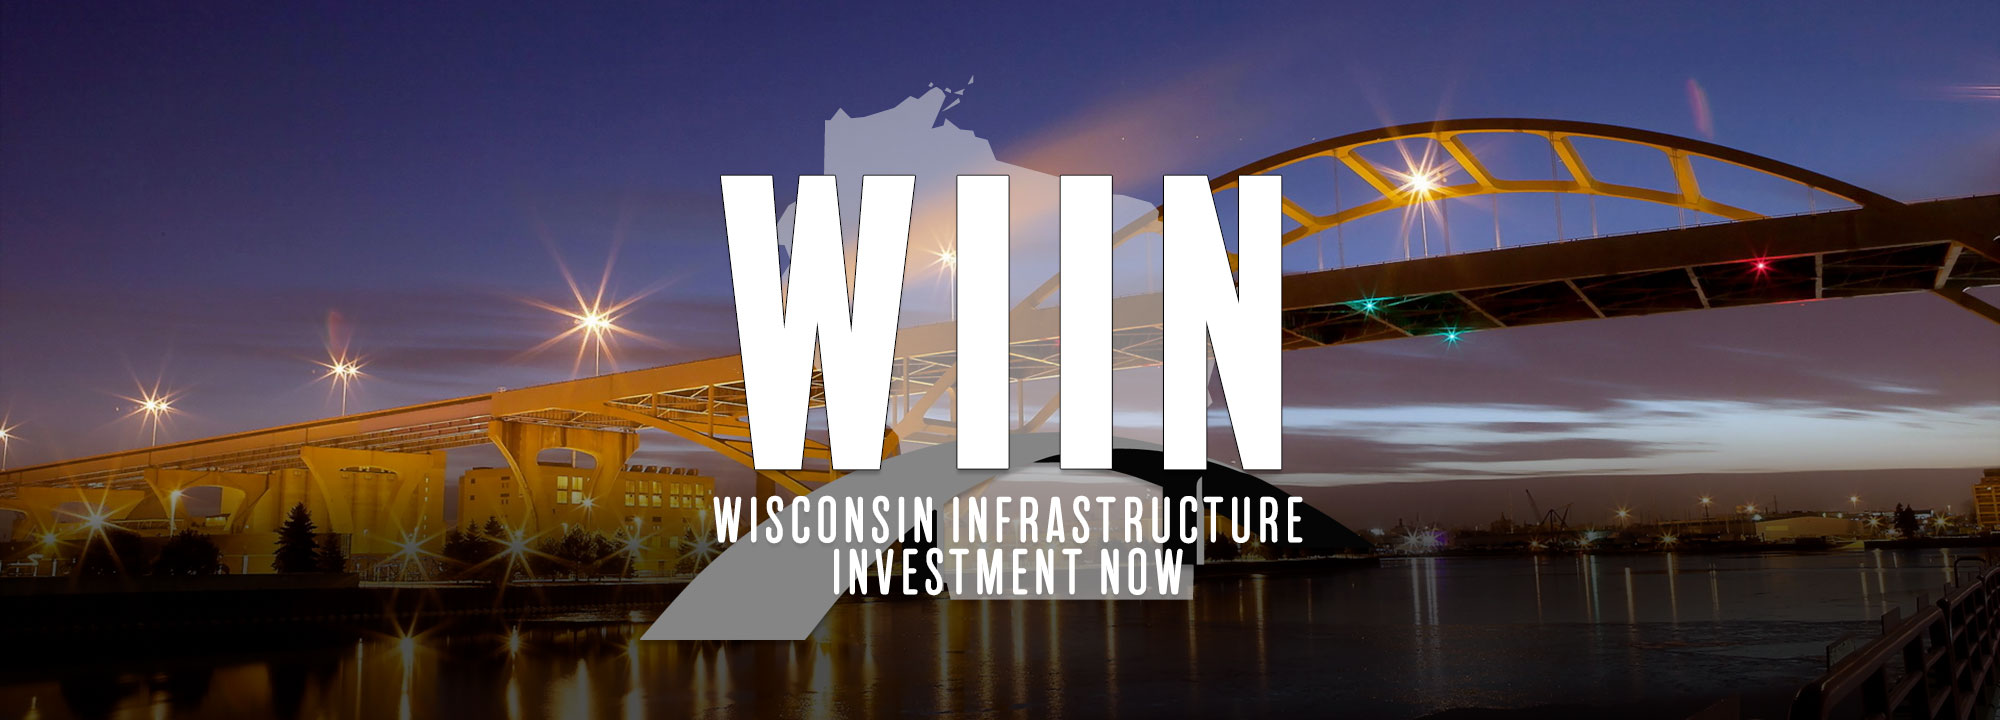 Wisconsin Infrastructure Investment Now